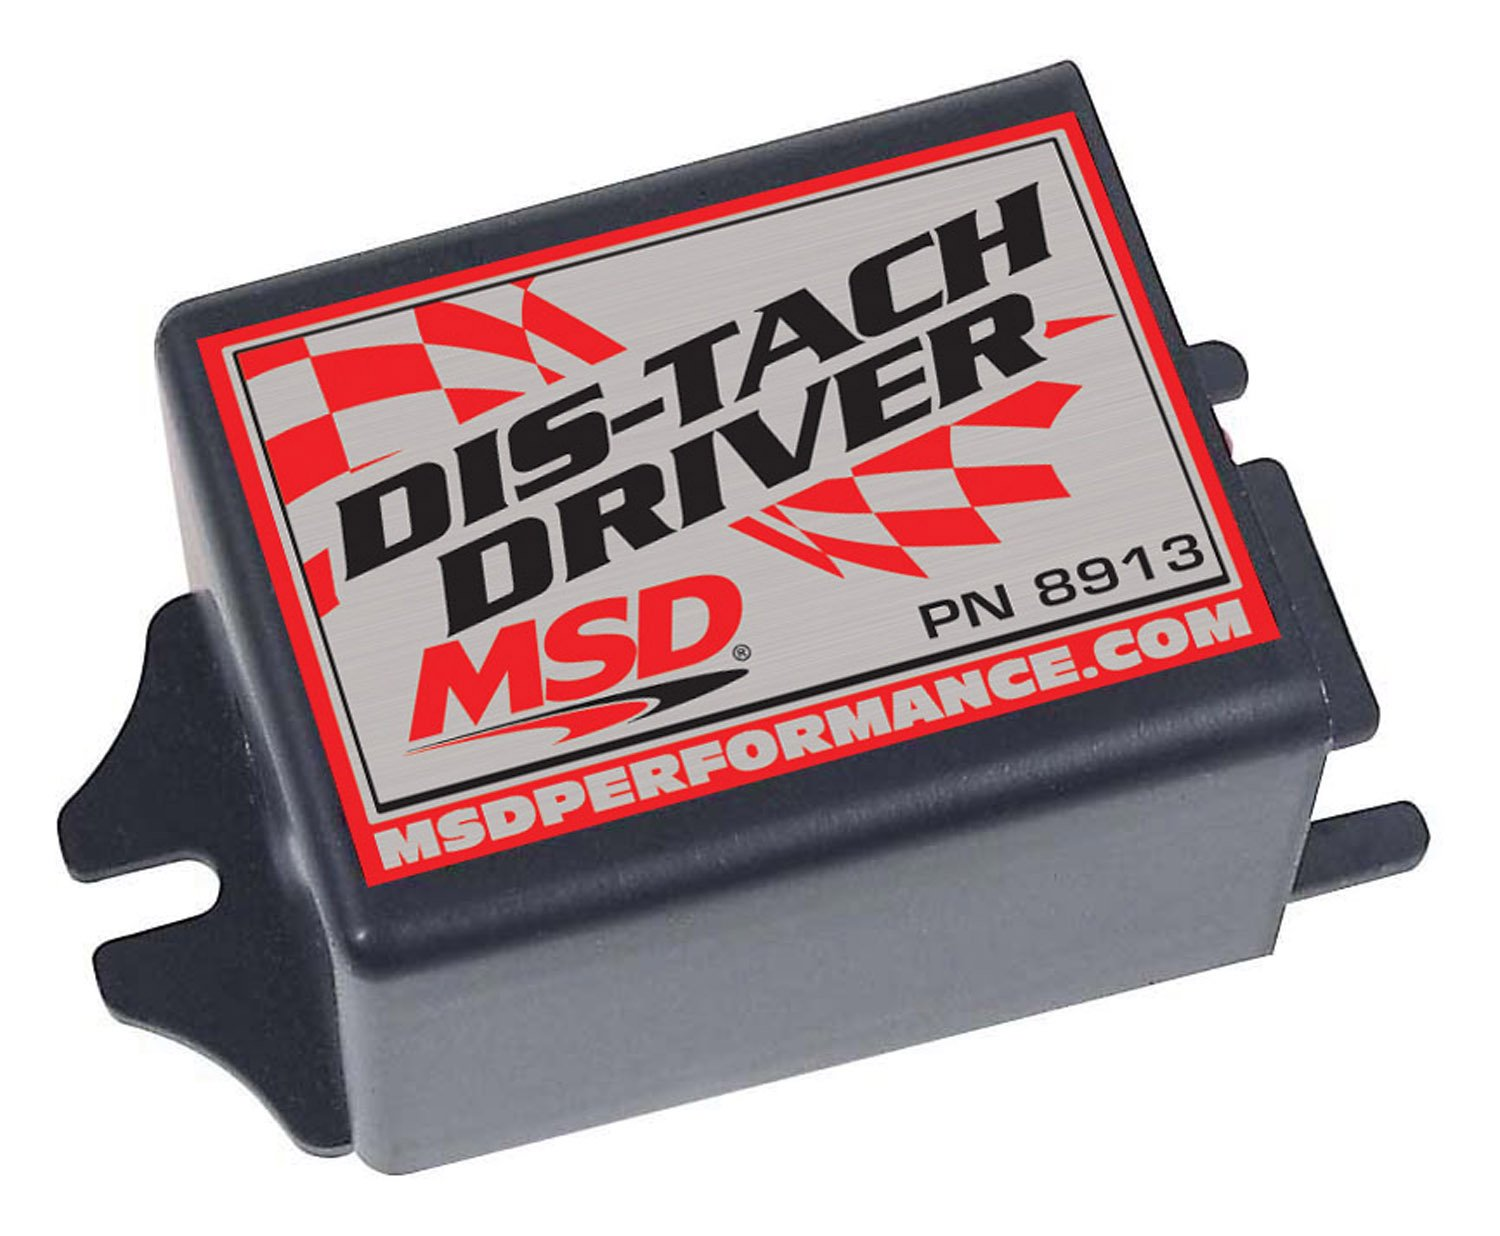 Msd 8913 Distributorless Tach Driver Sharing For A Better World Wiring Diagram Aftermarket Tachometer Image